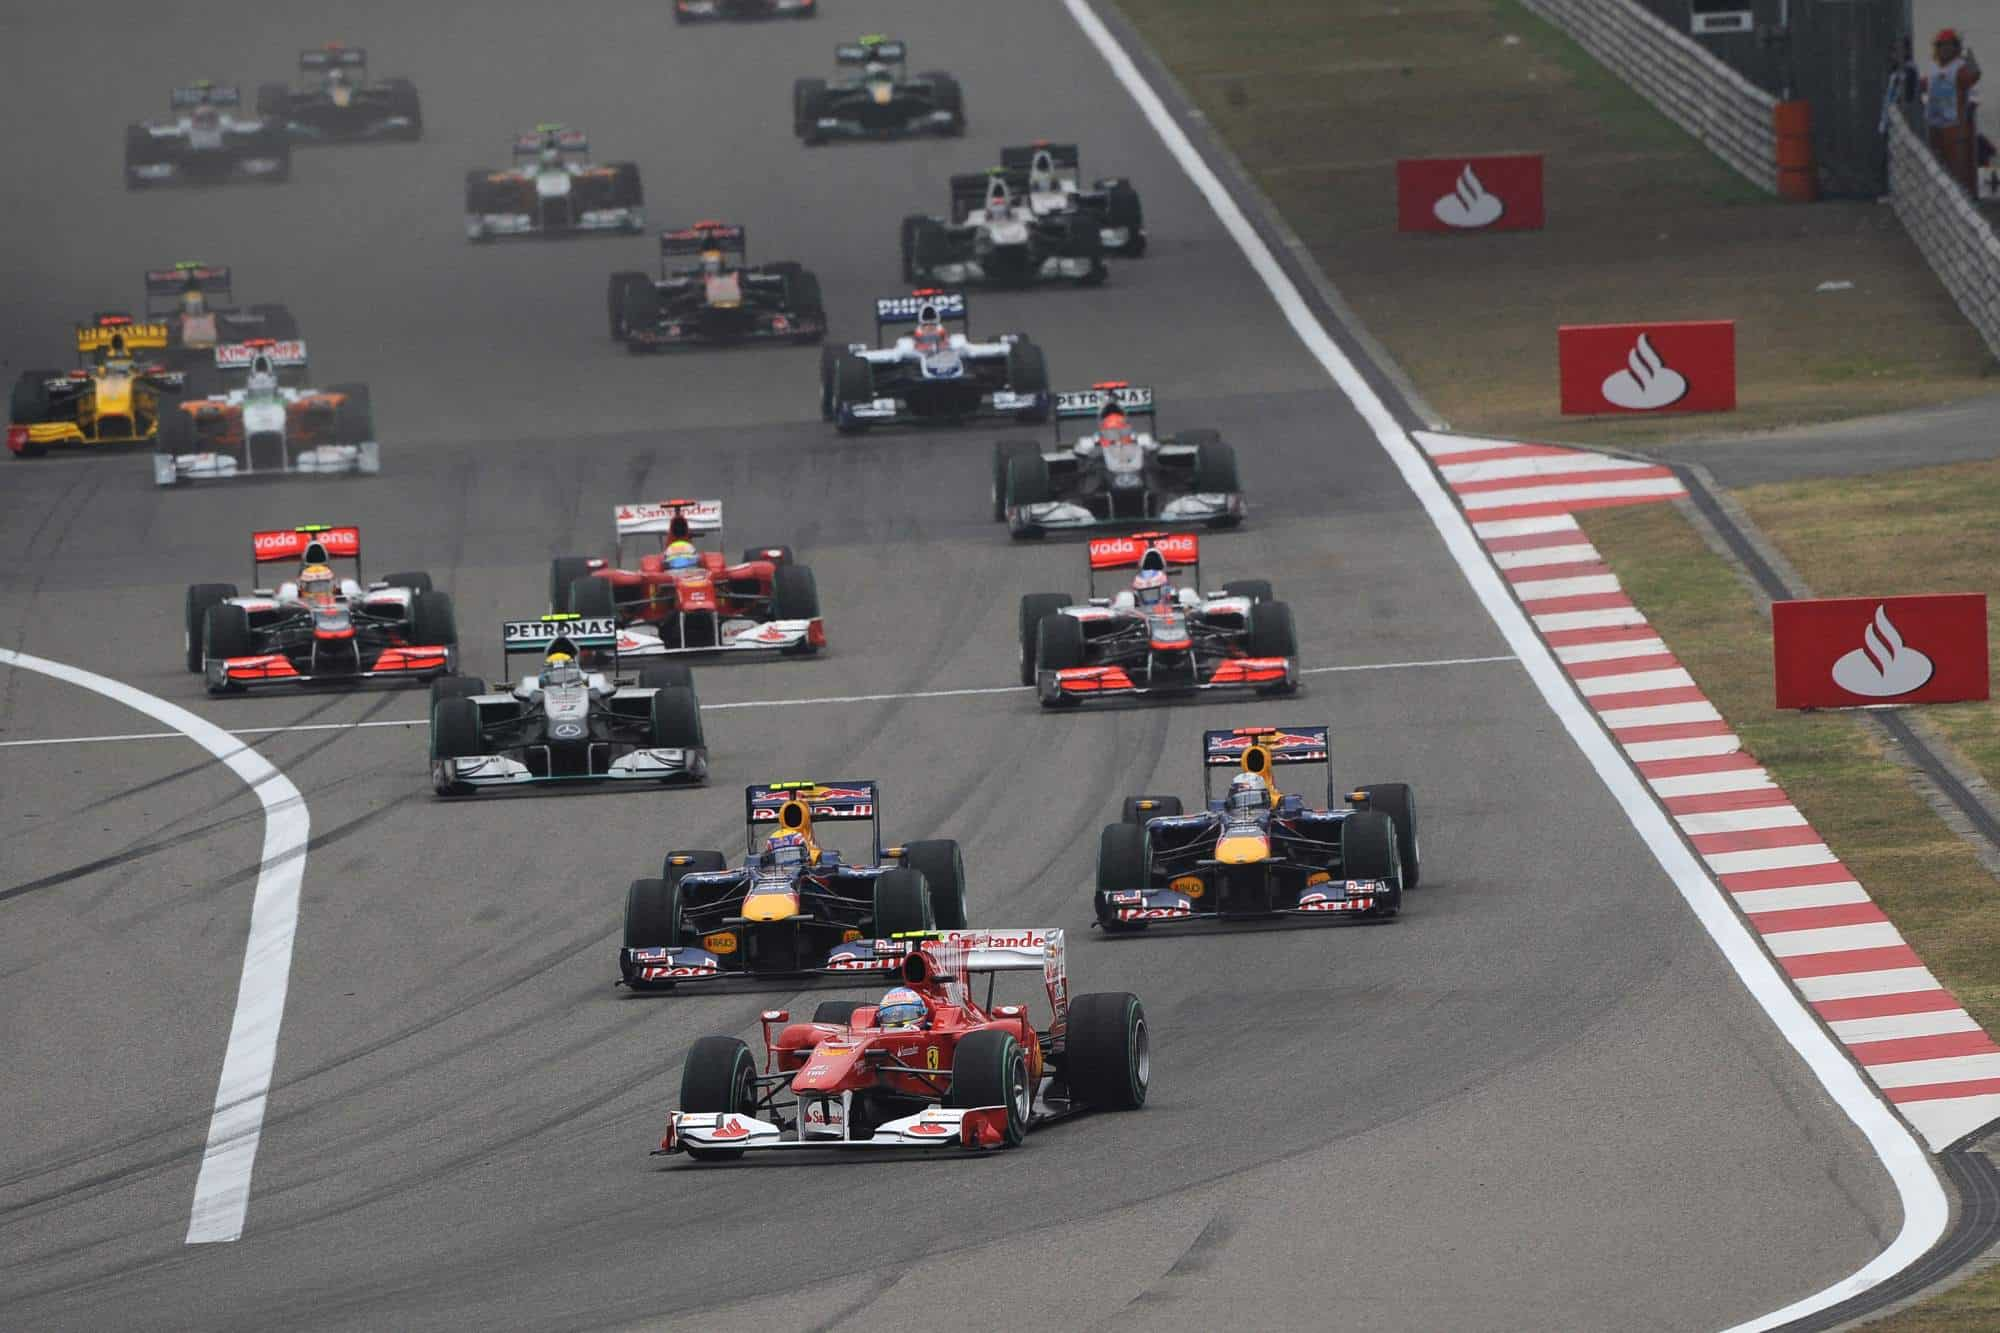 Chinese GP 2010 start Alonso leads Red Bulls